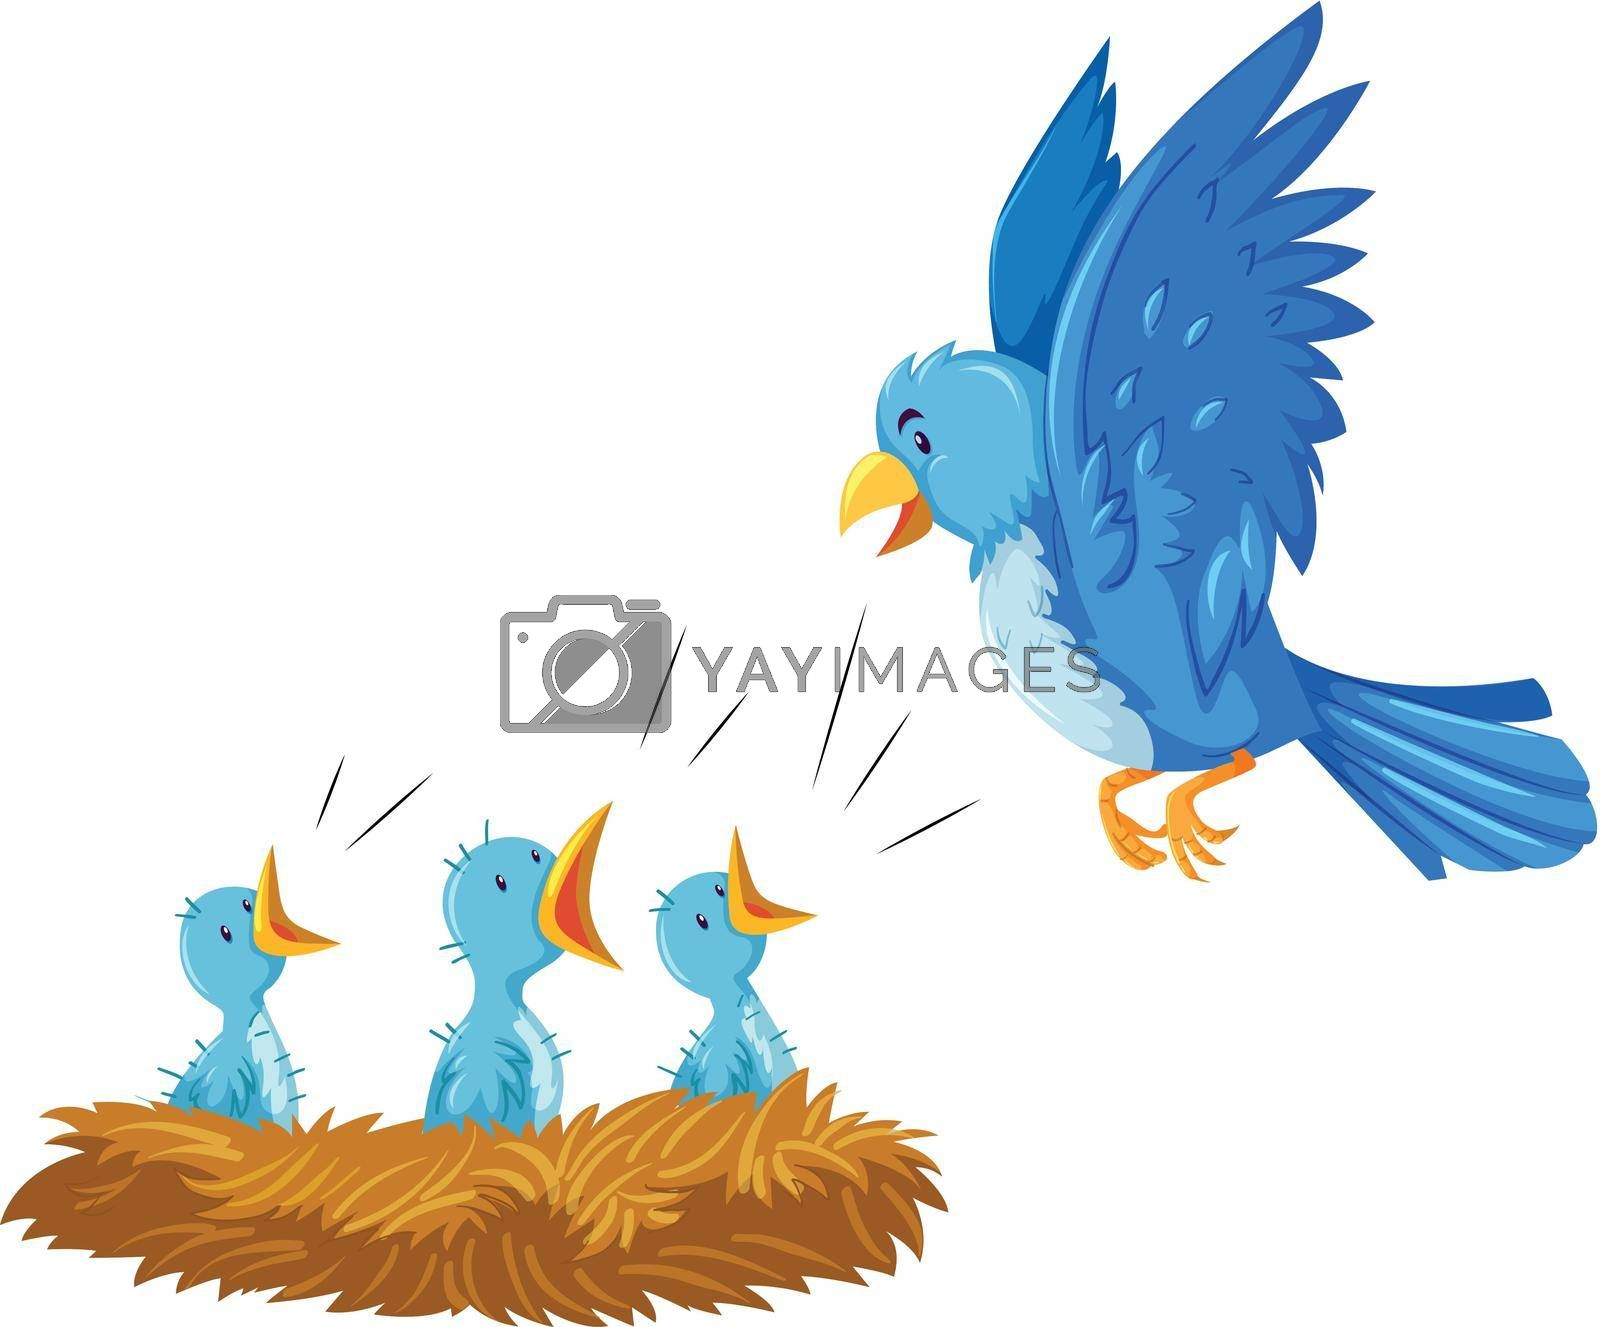 Royalty free image of Bird and its babies in the nest by iimages